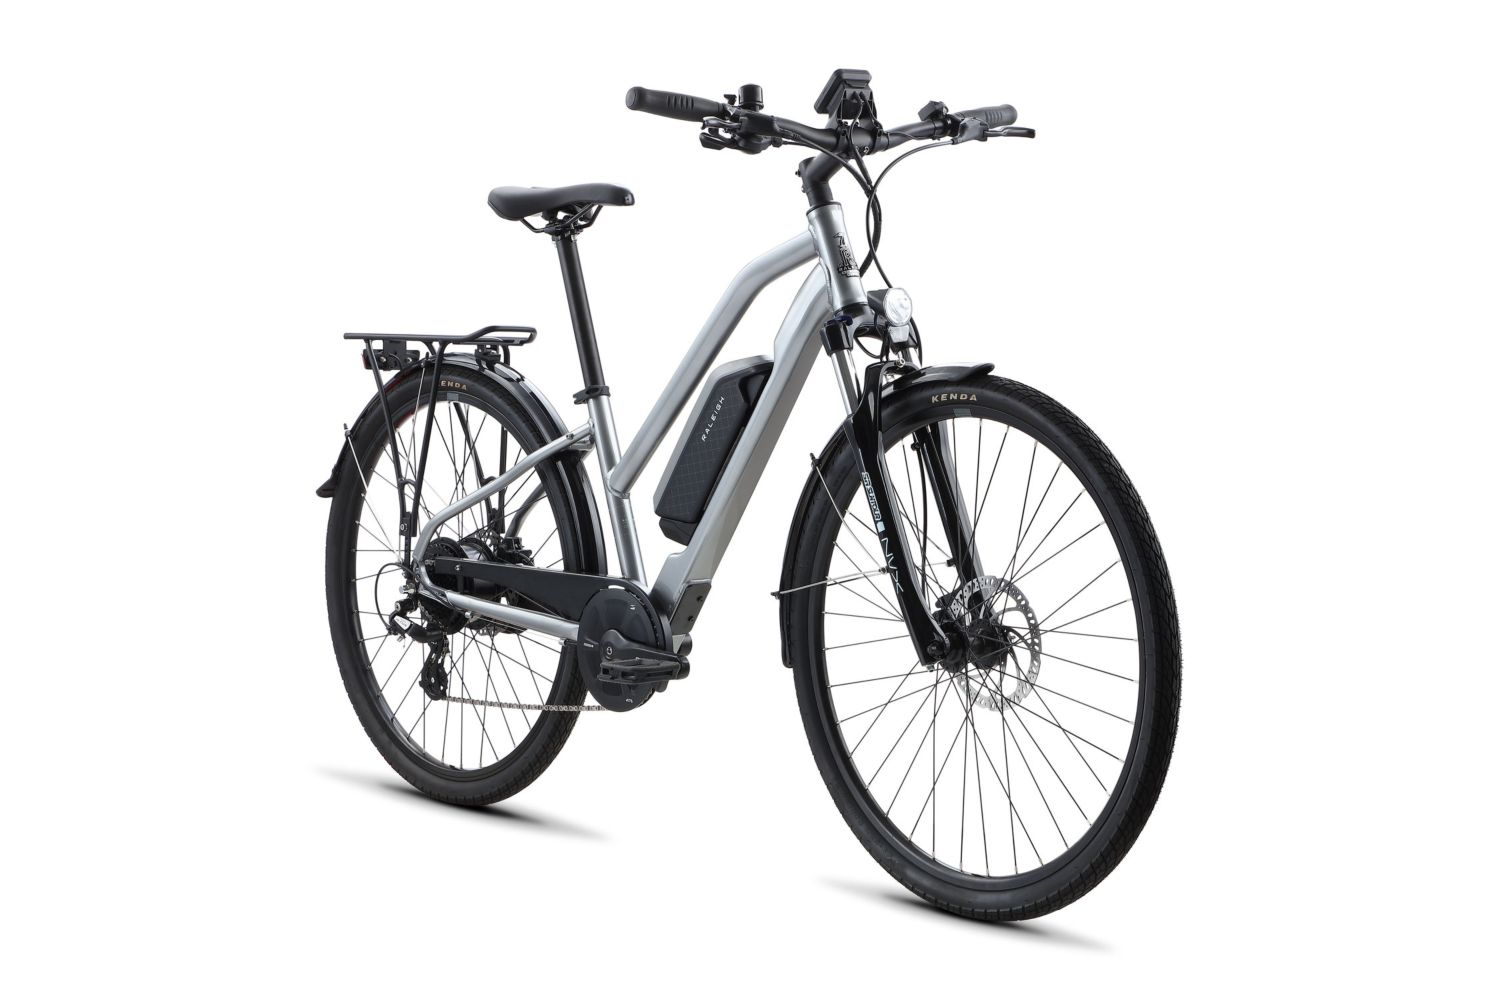 Raleigh Misceo Ie Low Step Electric Bike In Silver